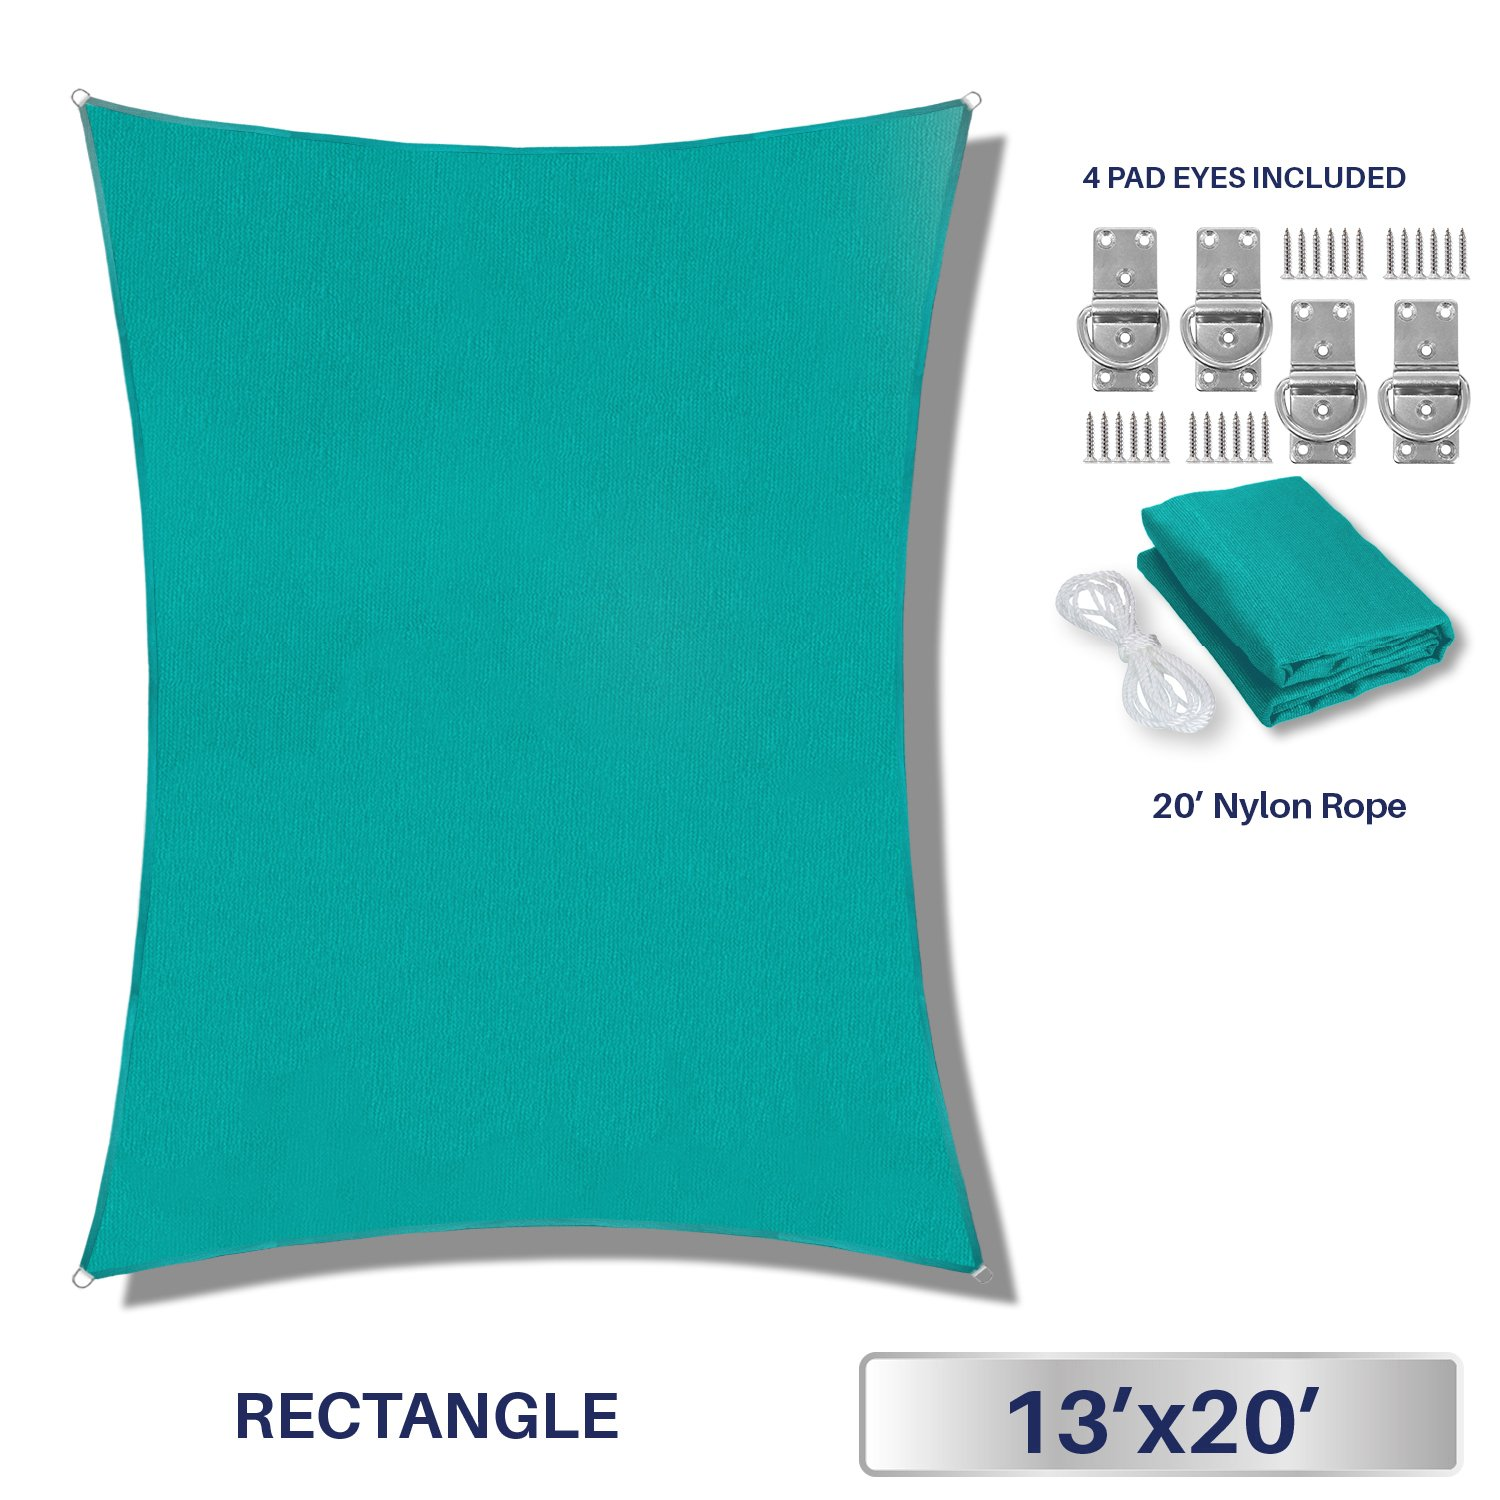 Windscreen4less 13' x 20' Sun Shade Sail UV Block Fabric Canopy in Turquoise Rectangle Patio Garden Customized 3 Year Limited Warranty